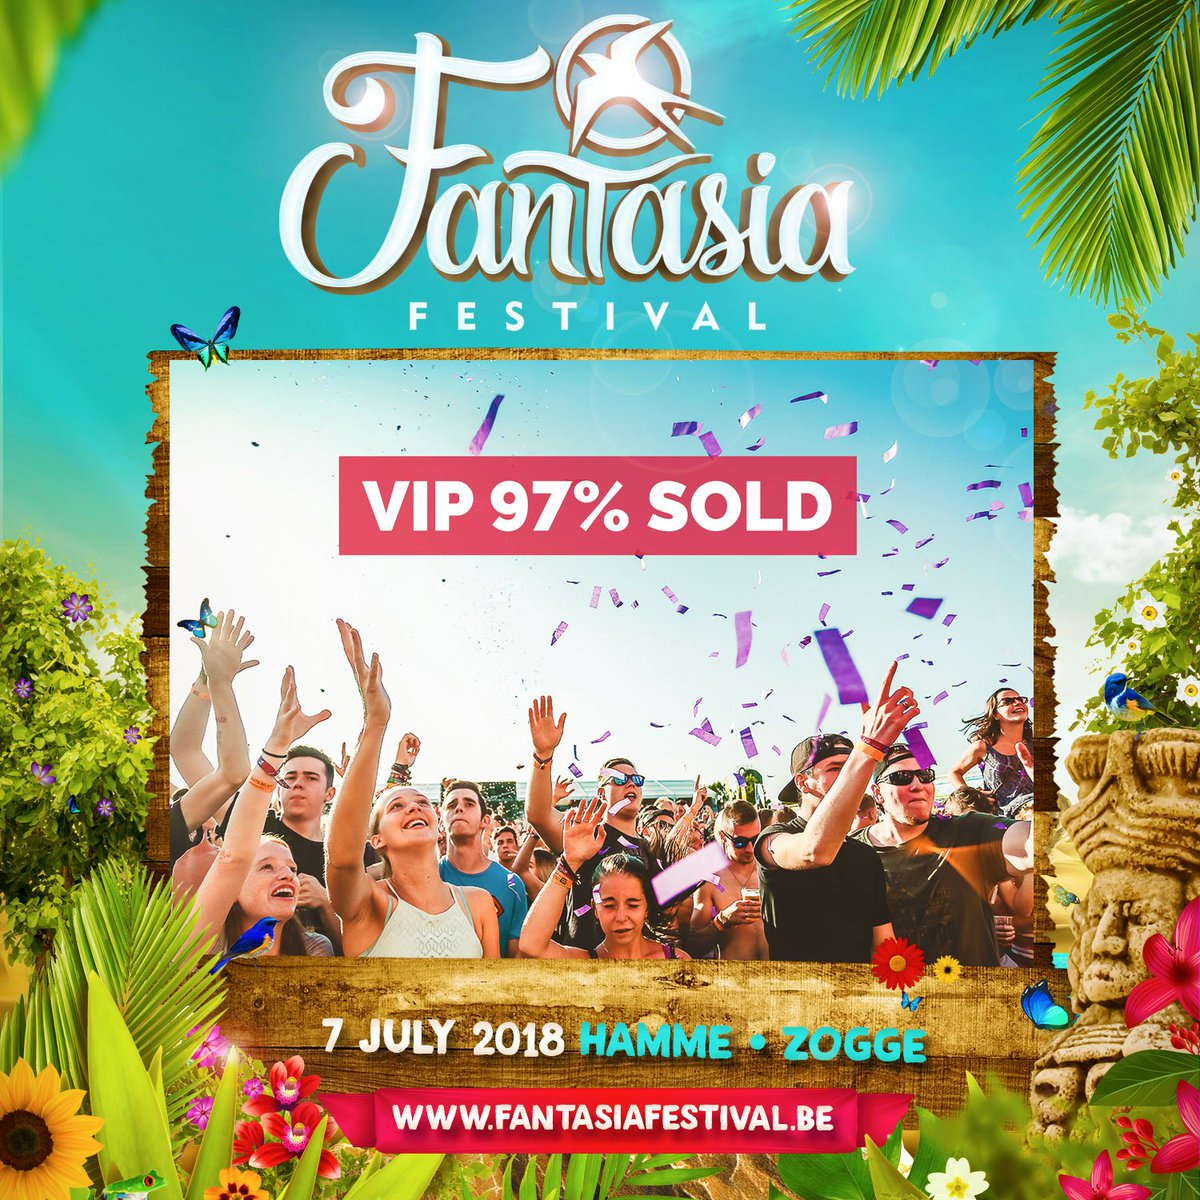 21557a96c Last chance to buy a VIP ticket 🚨 Fantasia Festival 2018 VIP has an all